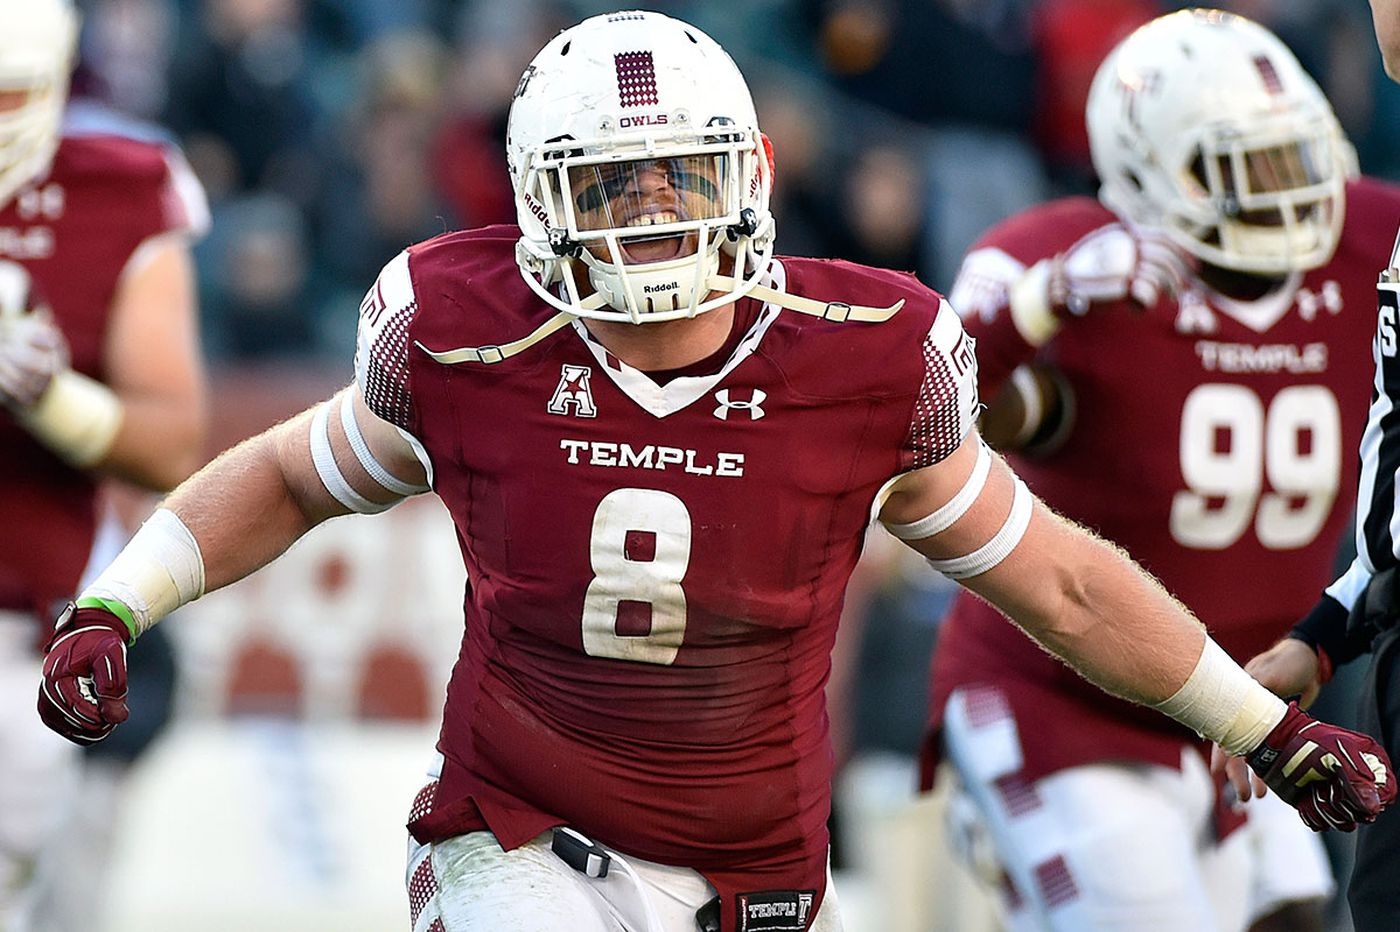 Temple's Tyler Matakevich selected nation's best defensive player